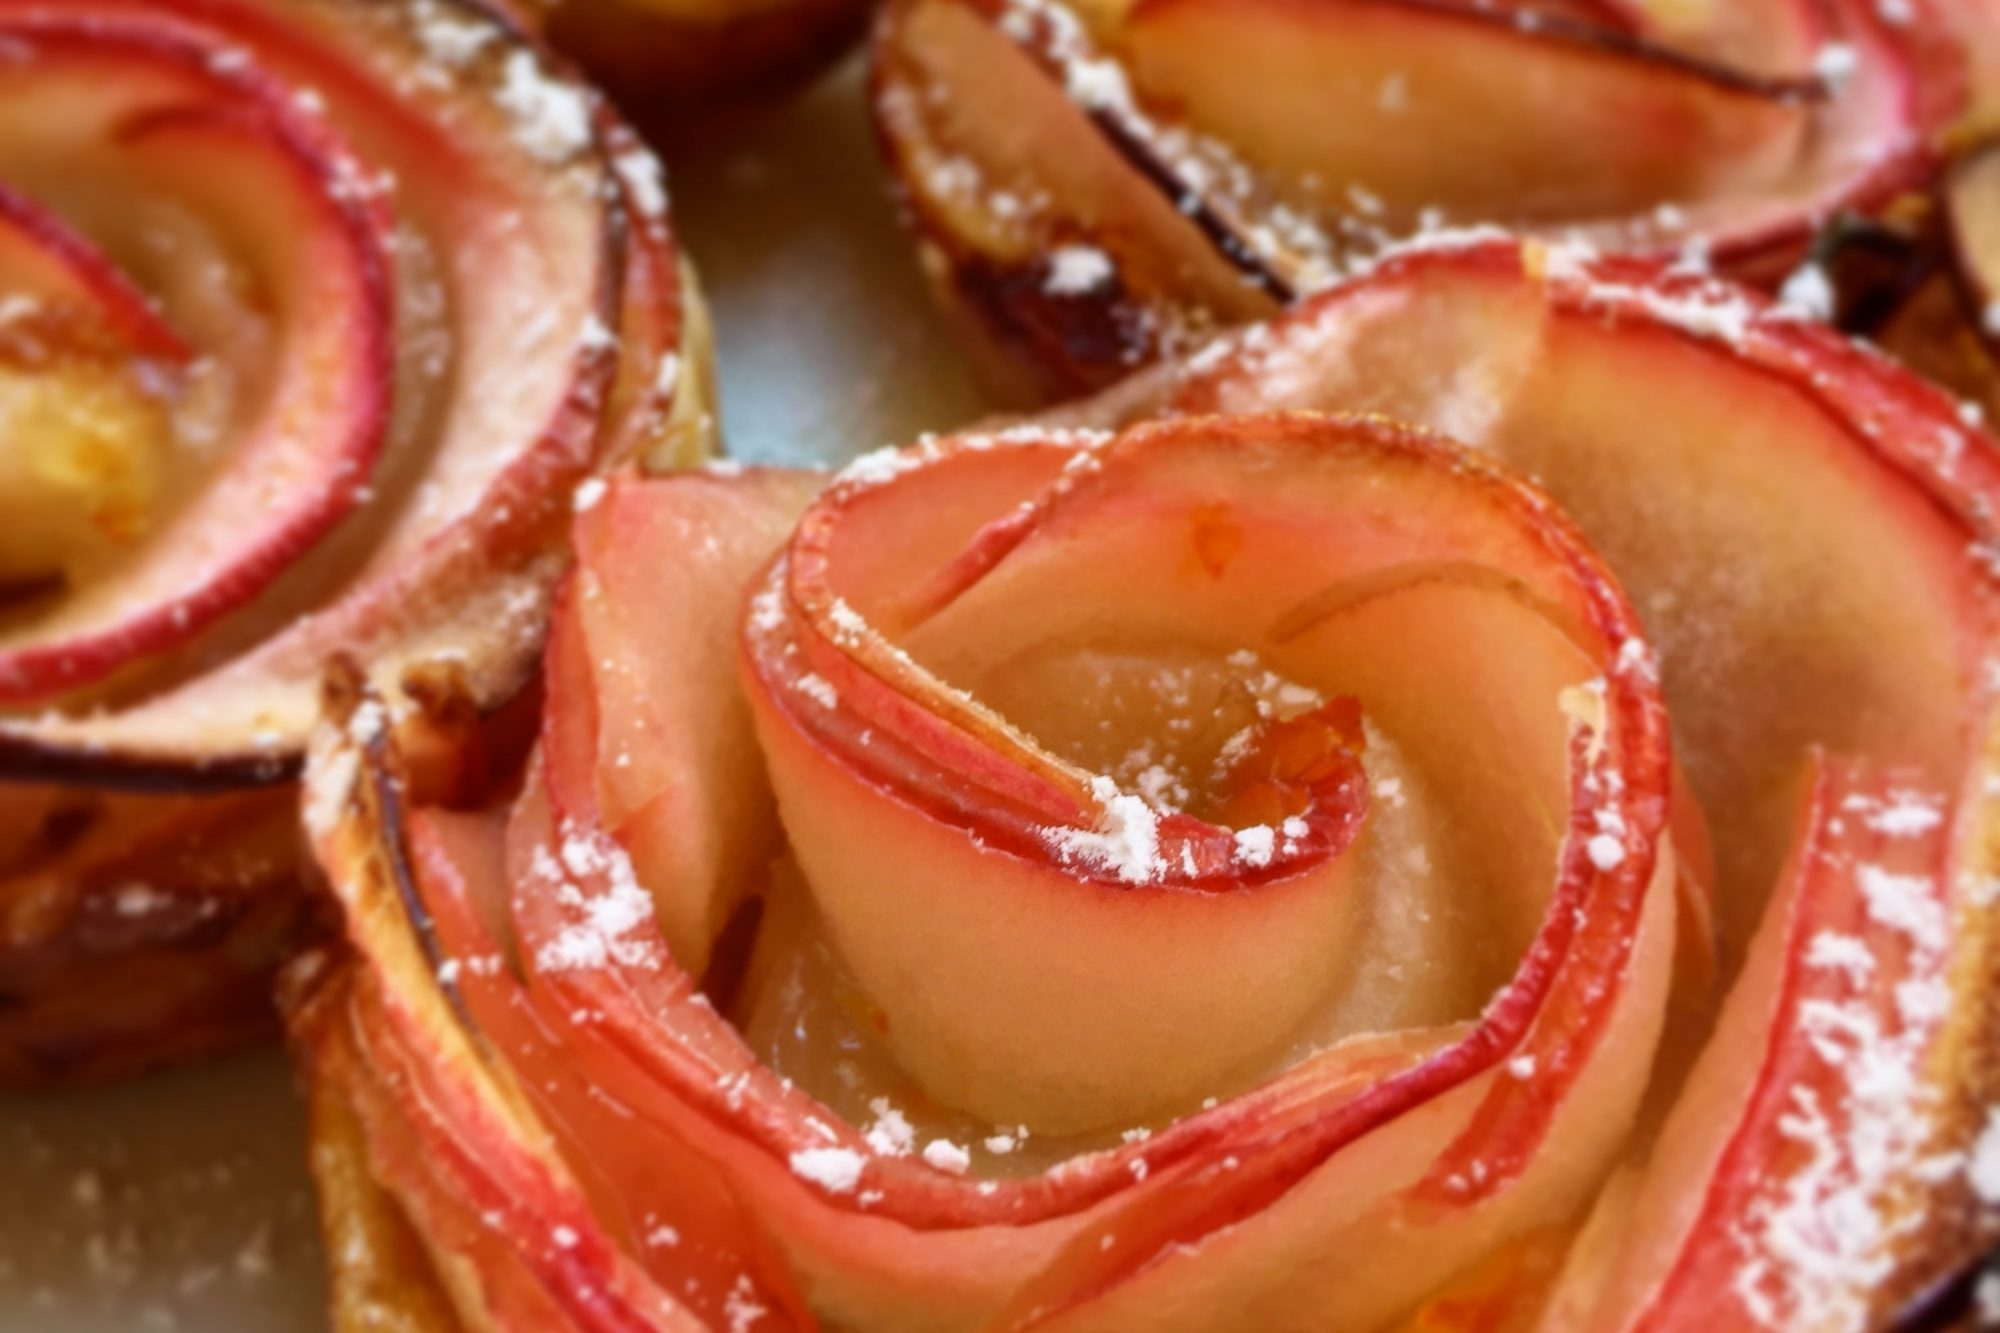 Baked Apple Roses with powdered sugar on top